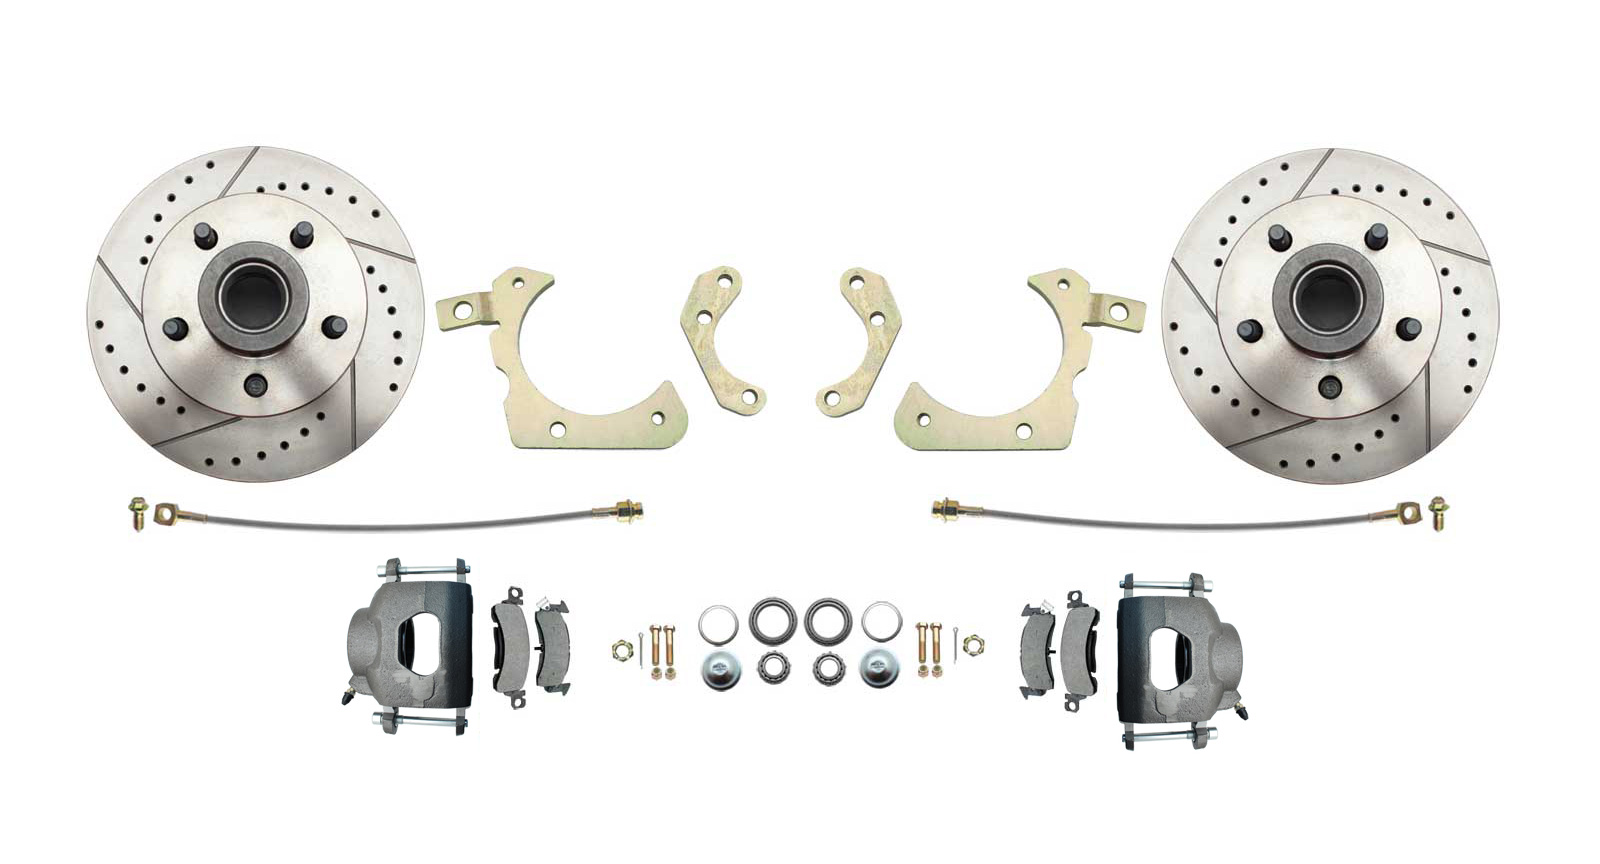 1955-58 Chevy Stock Height High Performance Disc Brake Conversion Kit (Impala, Bel Air, Biscayne)